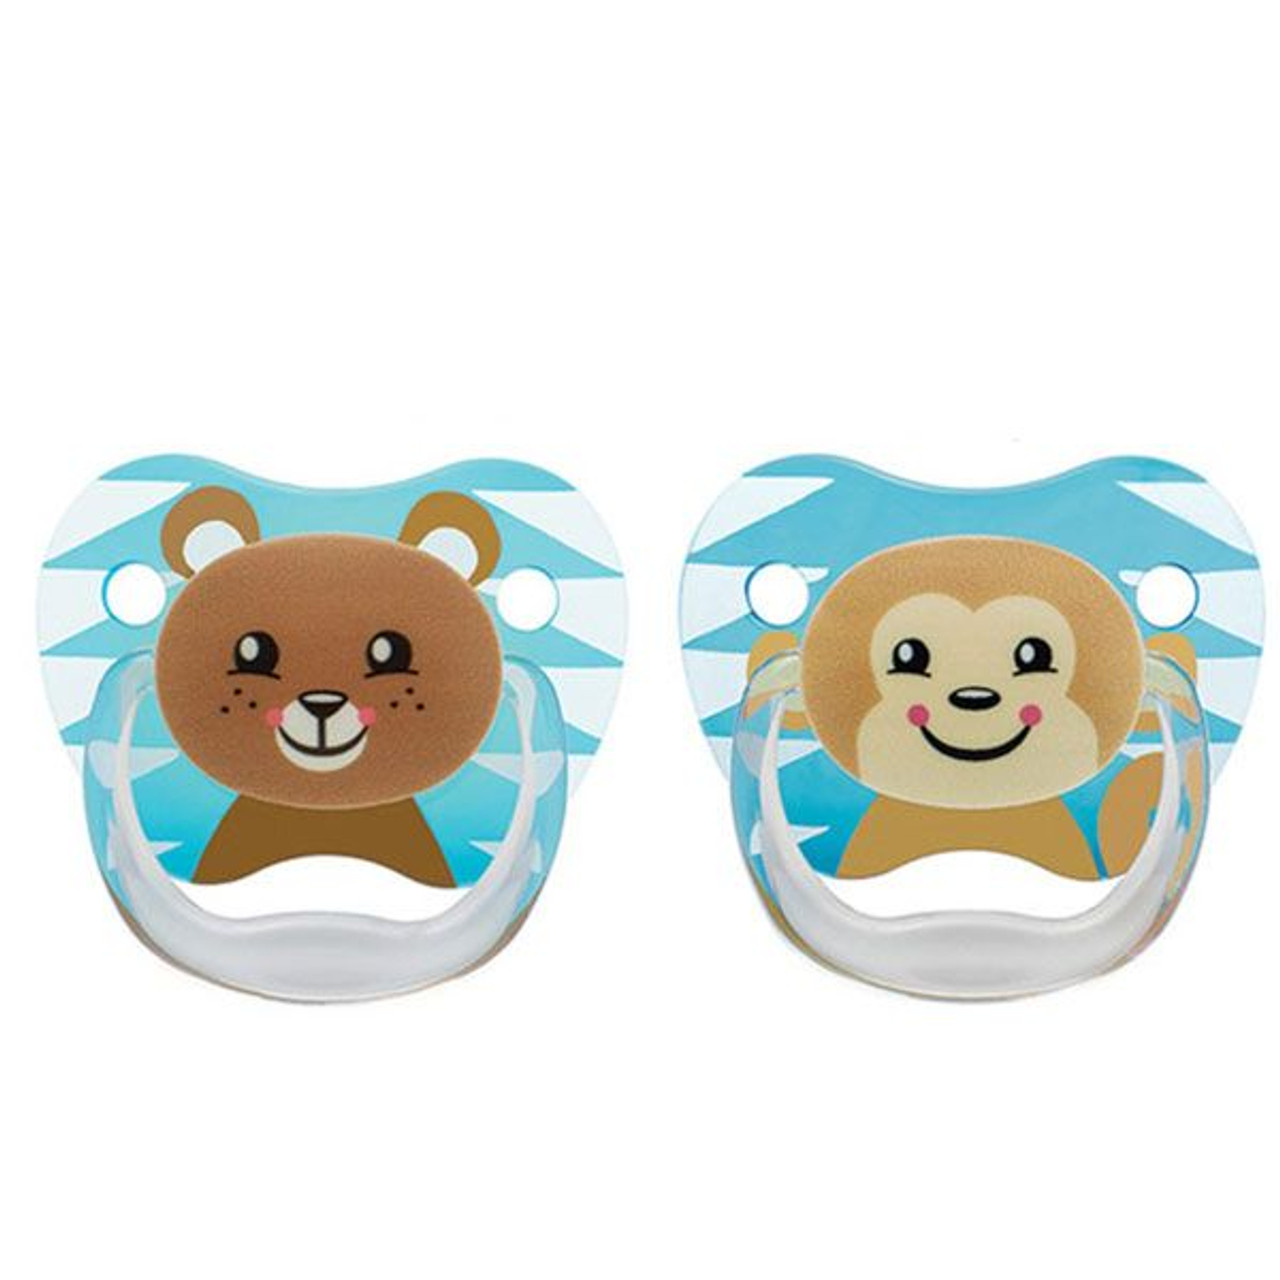 Dr Brown's PreVent Printed Shield Pacifier 6-12m 2pk at Baby Barn Discounts Dr Brown's Prevent orthodontic Suction-Free Air Channel helps reduce suction and palatal pressure.